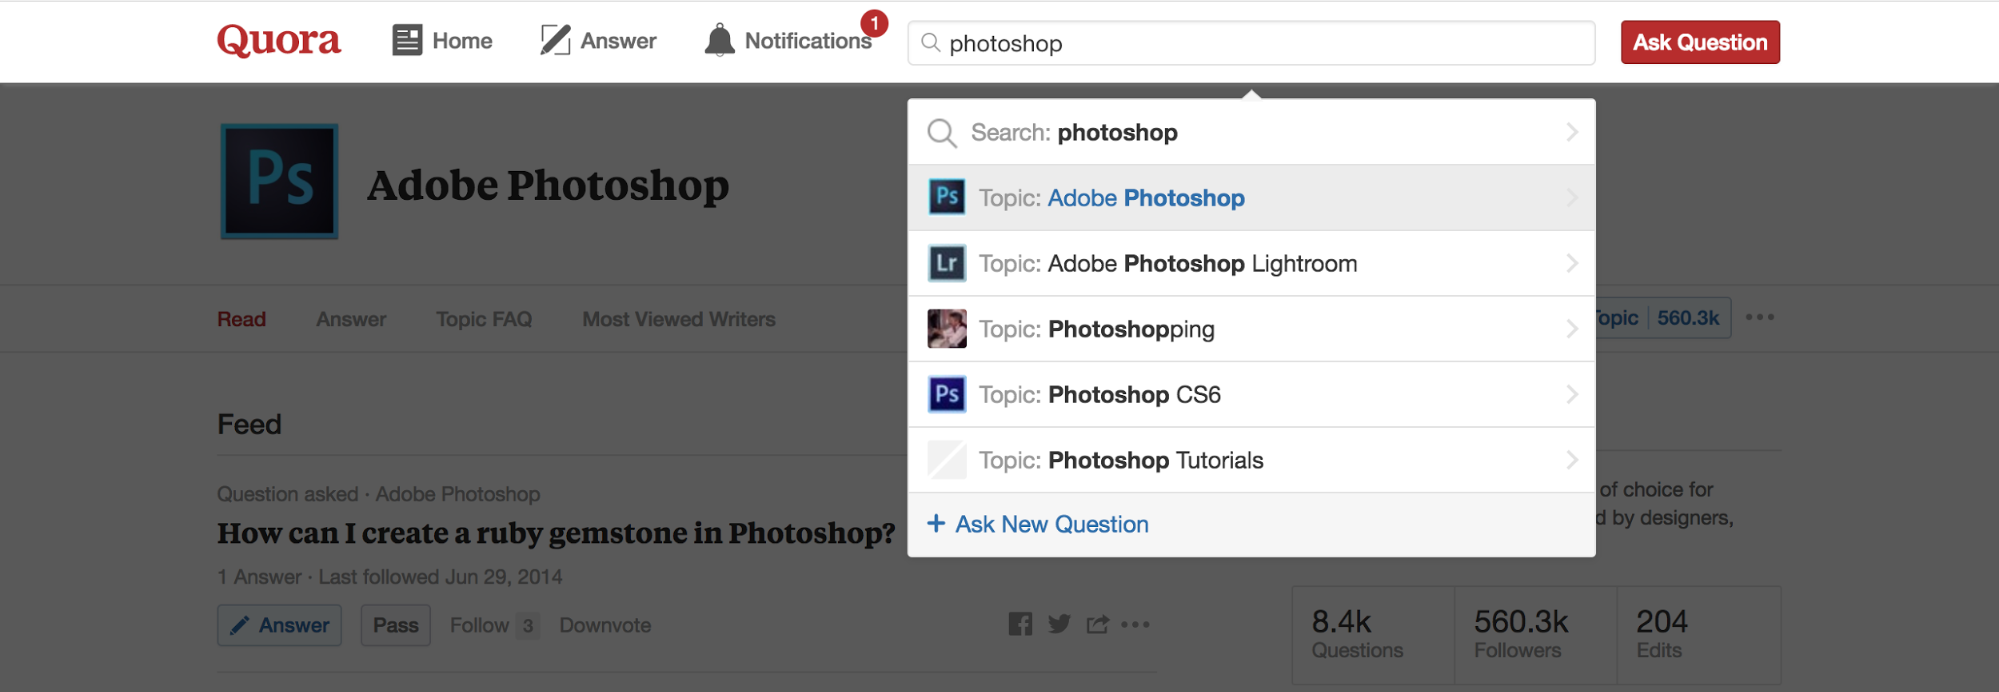 "Screenshot showing quora recommendations for search query ""photoshop"""